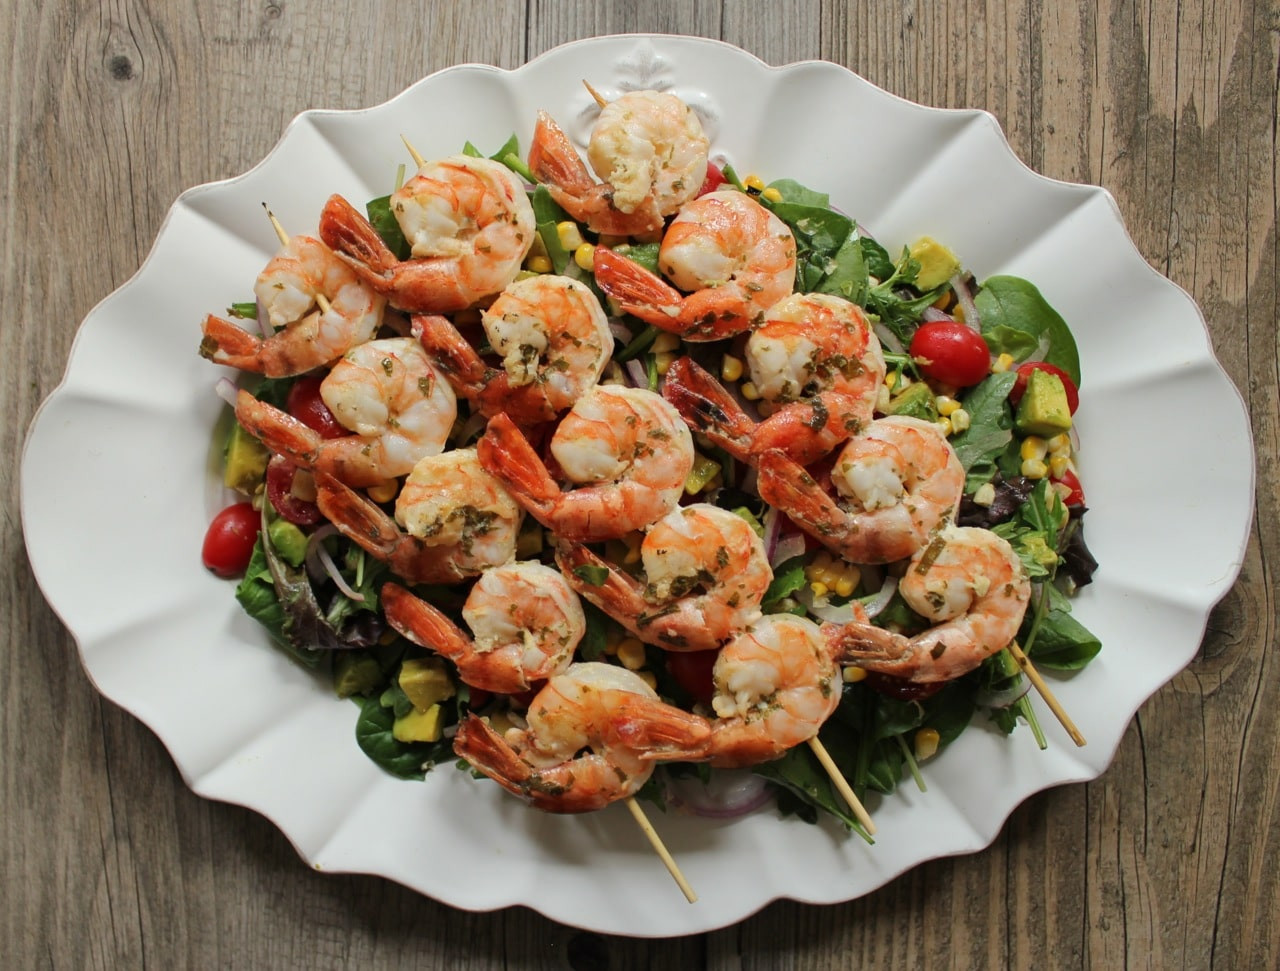 Shrimp And Corn Salad  Summer Salad with Avocado Corn and Grilled Herb Shrimp